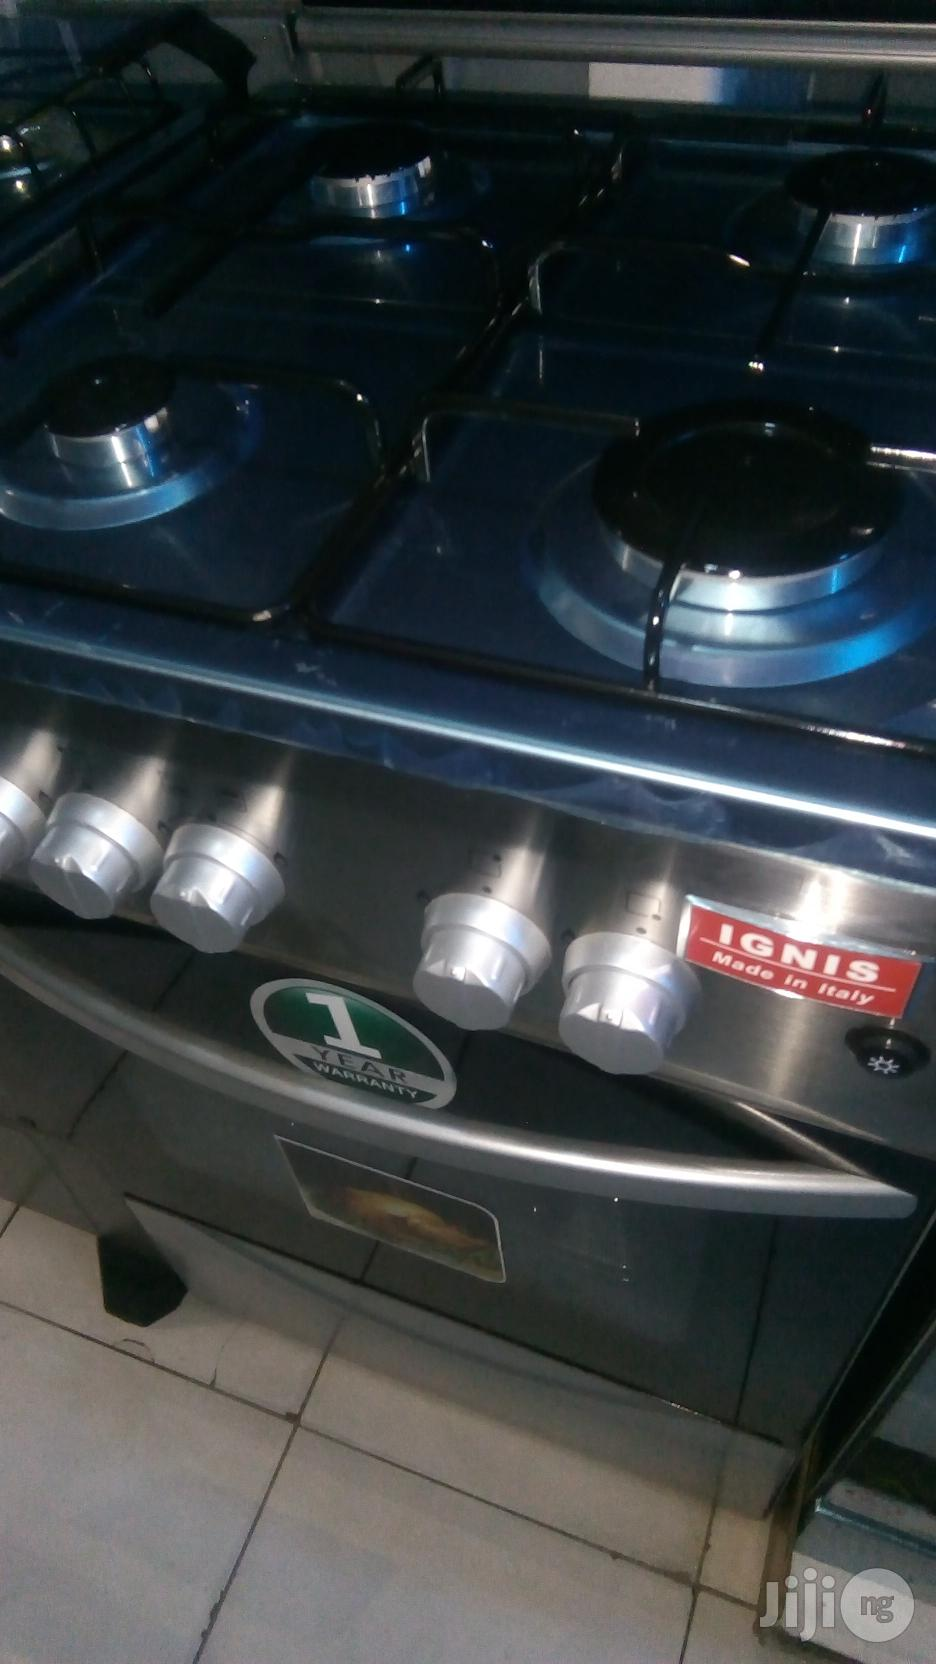 4 Burners Standing Cooker With Oven